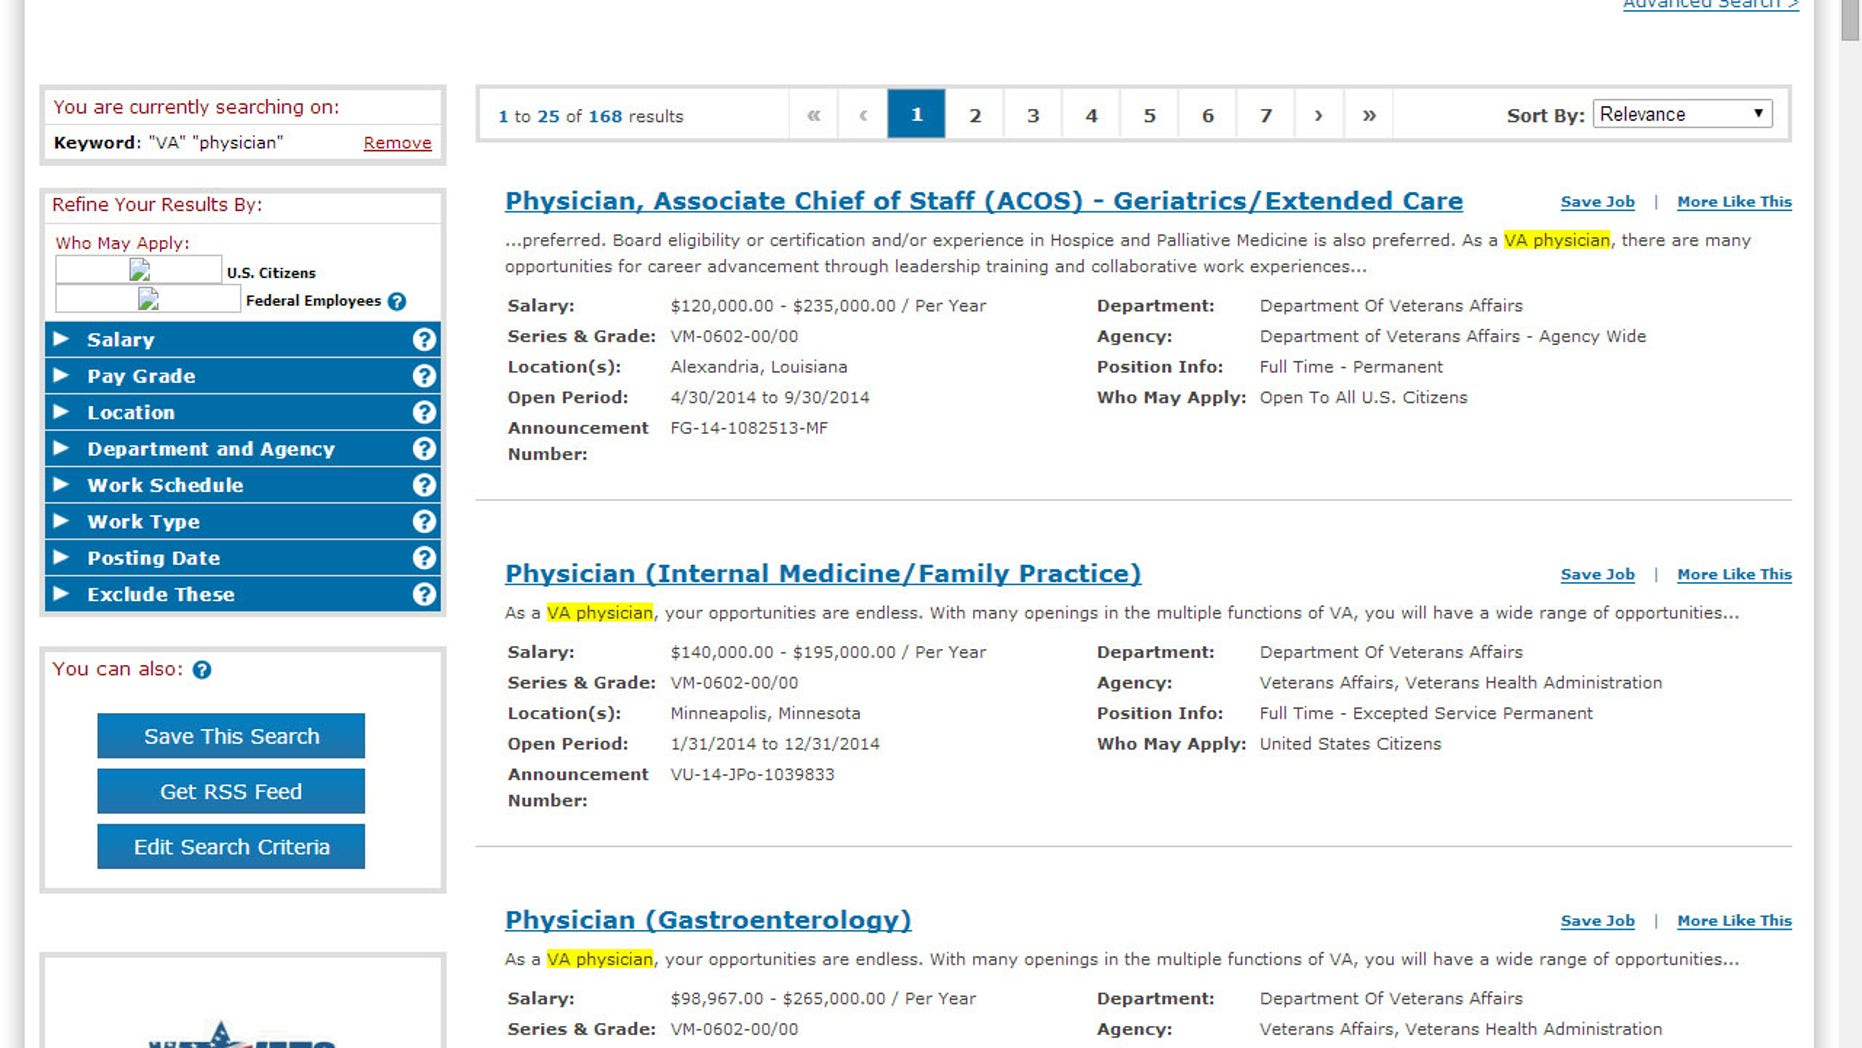 Screen grab of the federal USAJobs listing for Friday, May 23, 2014.